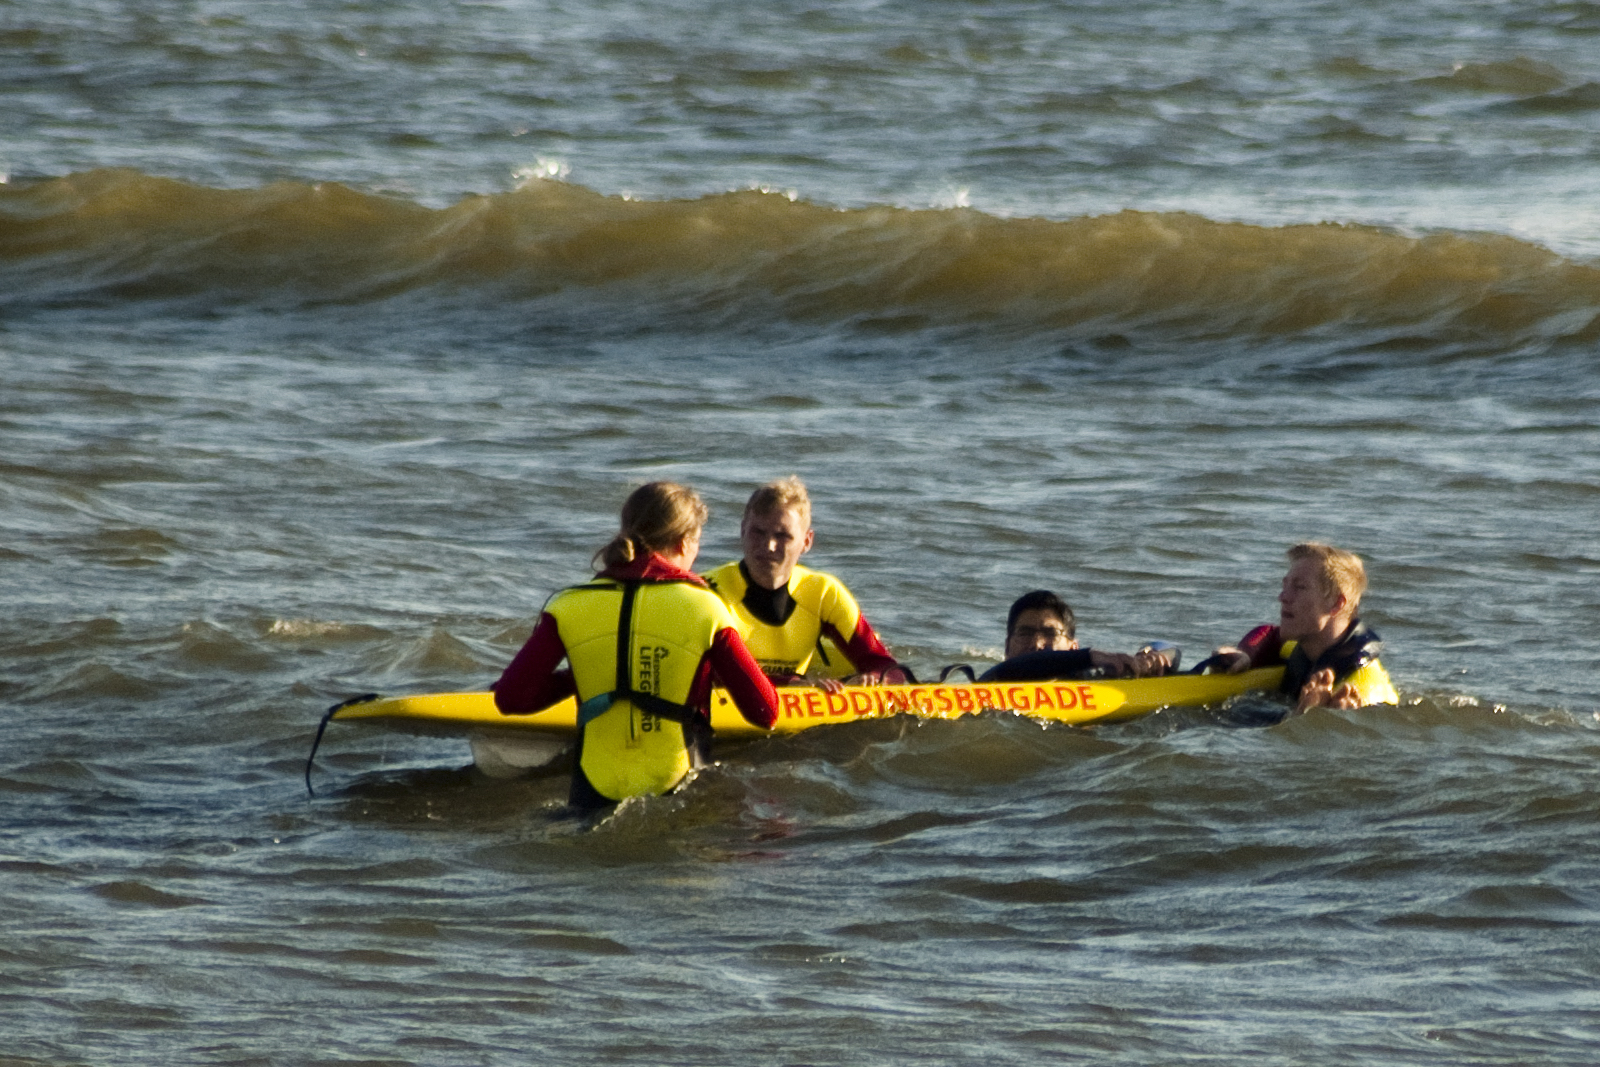 Junior Lifeguard redding met rescueboard Reddingsbrigade IJmuiden (IJRB)